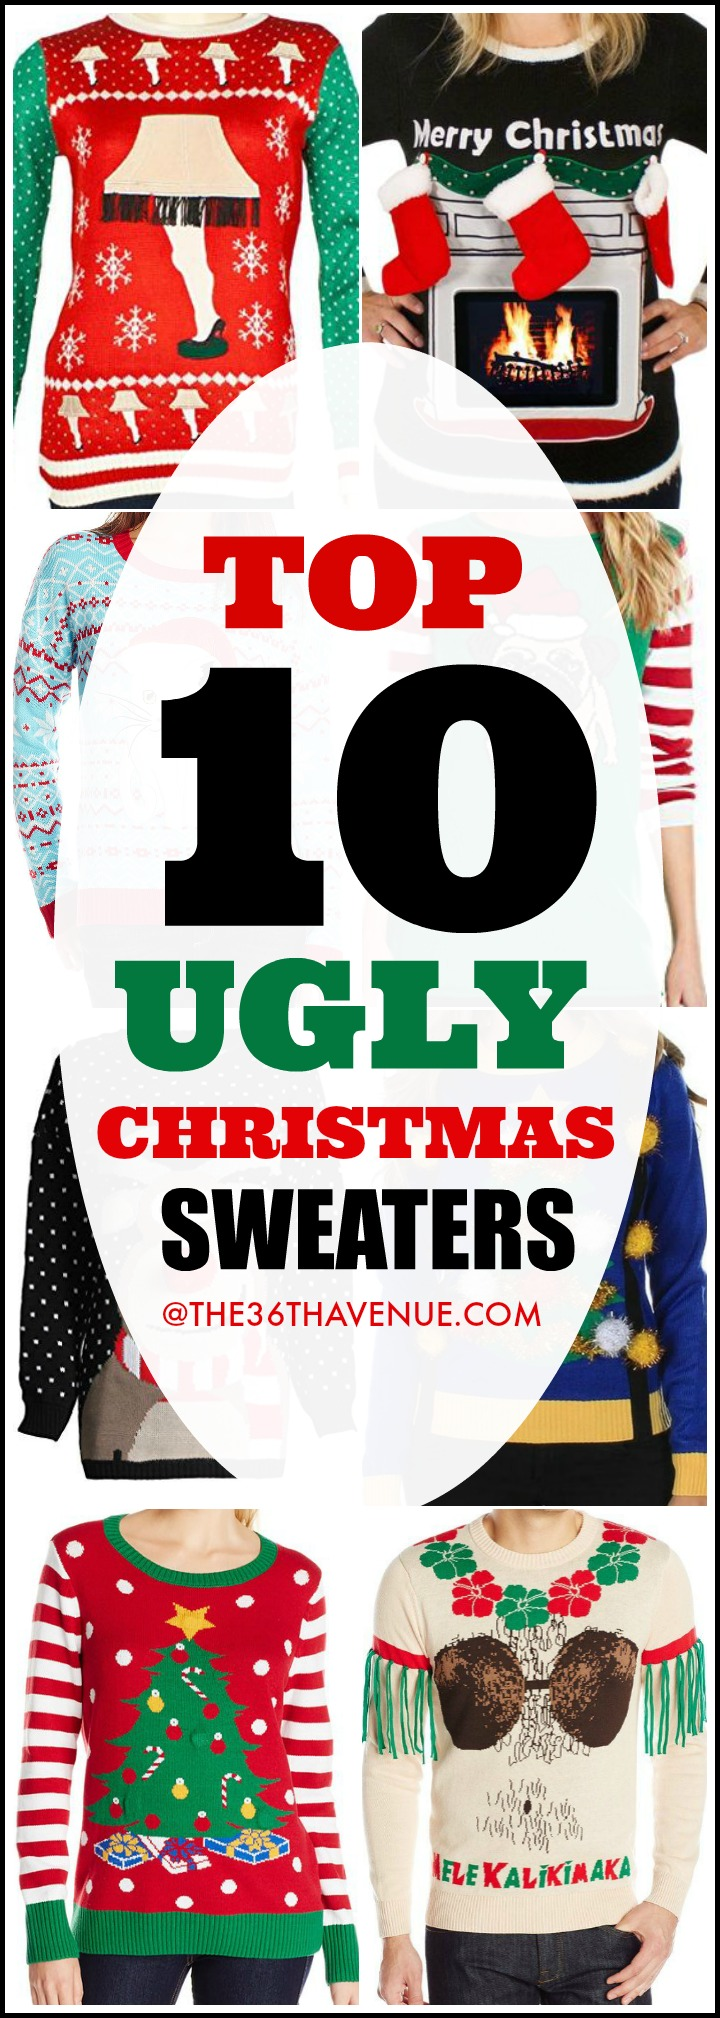 Ugly Christmas Sweaters the36thavenue.com